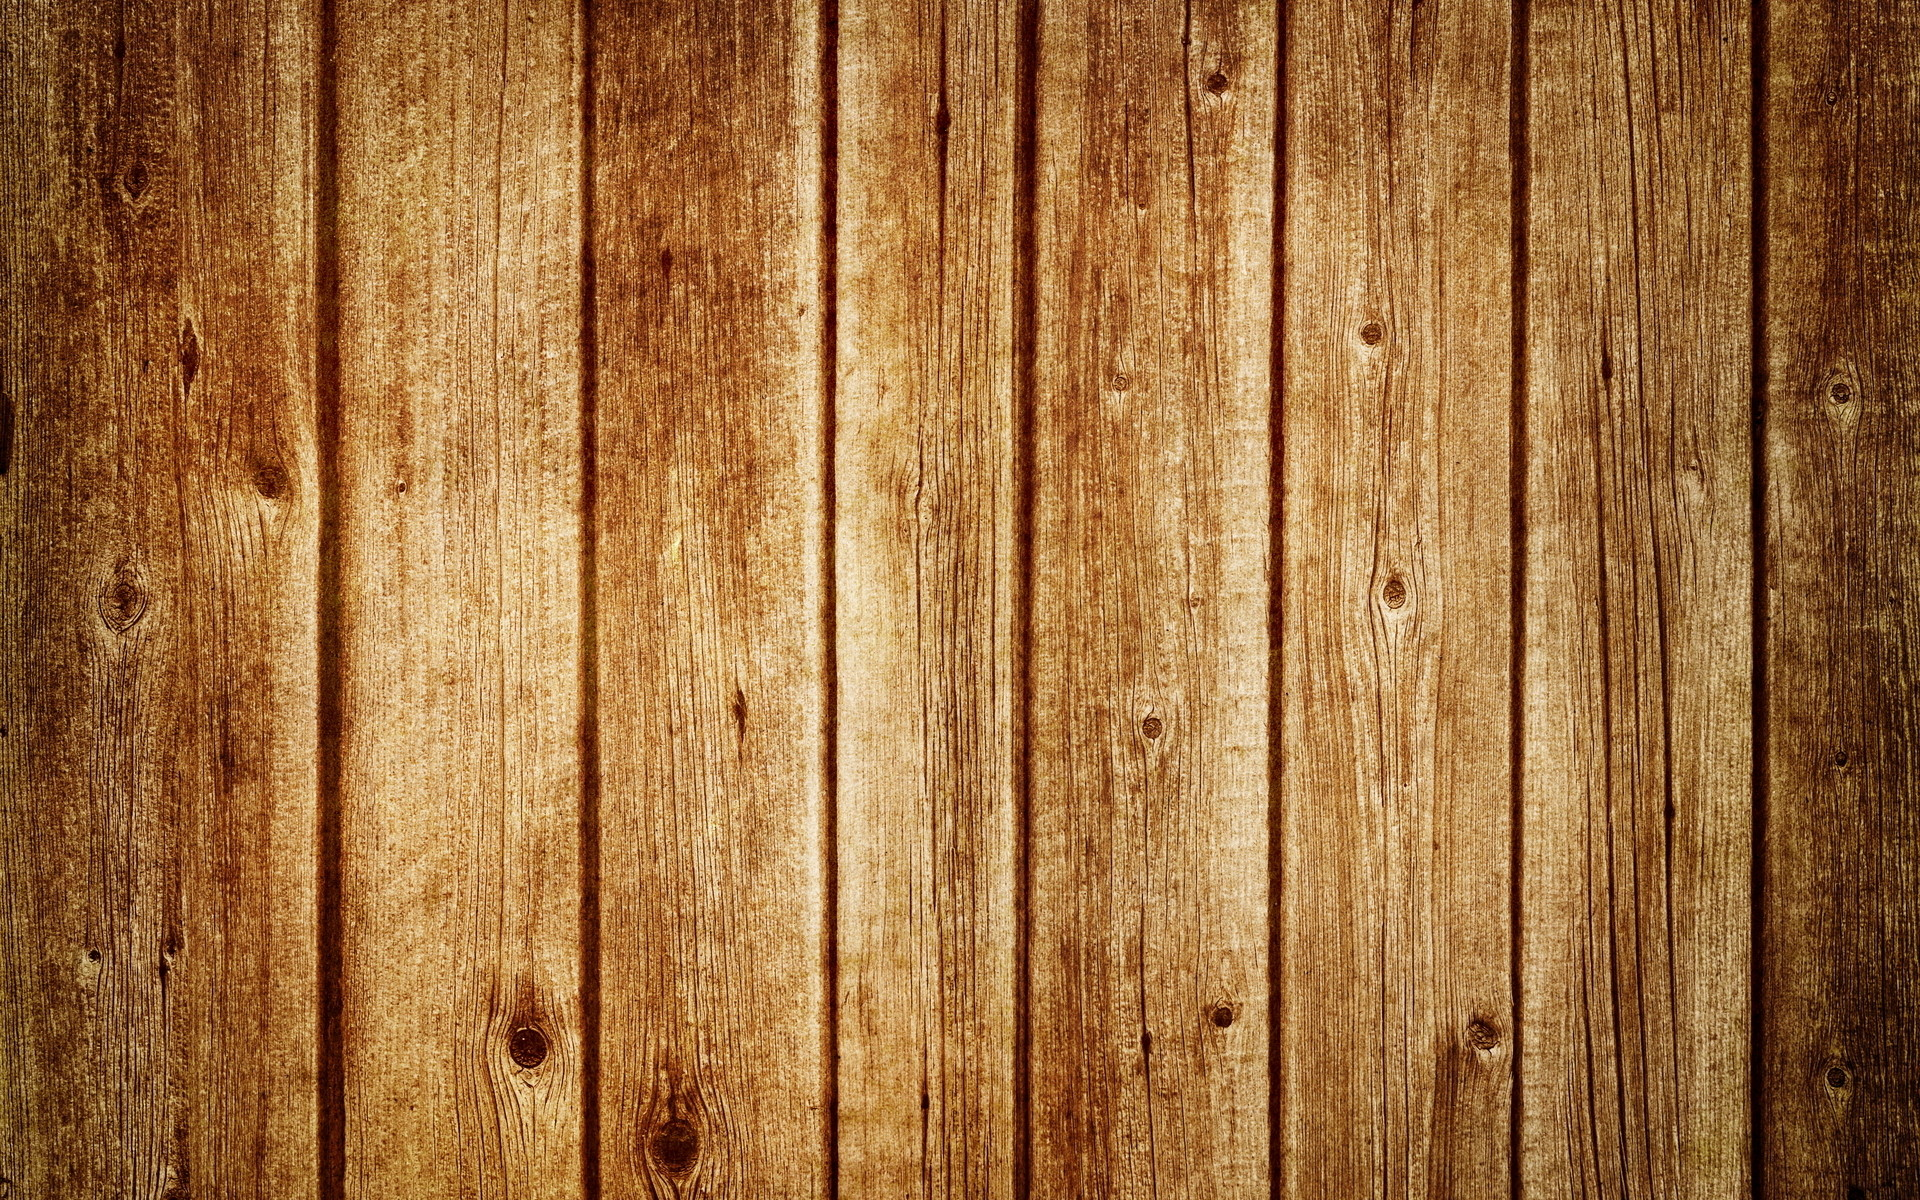 1920x1200 IPhone Wood Wallpapers HD Desktop Backgrounds x